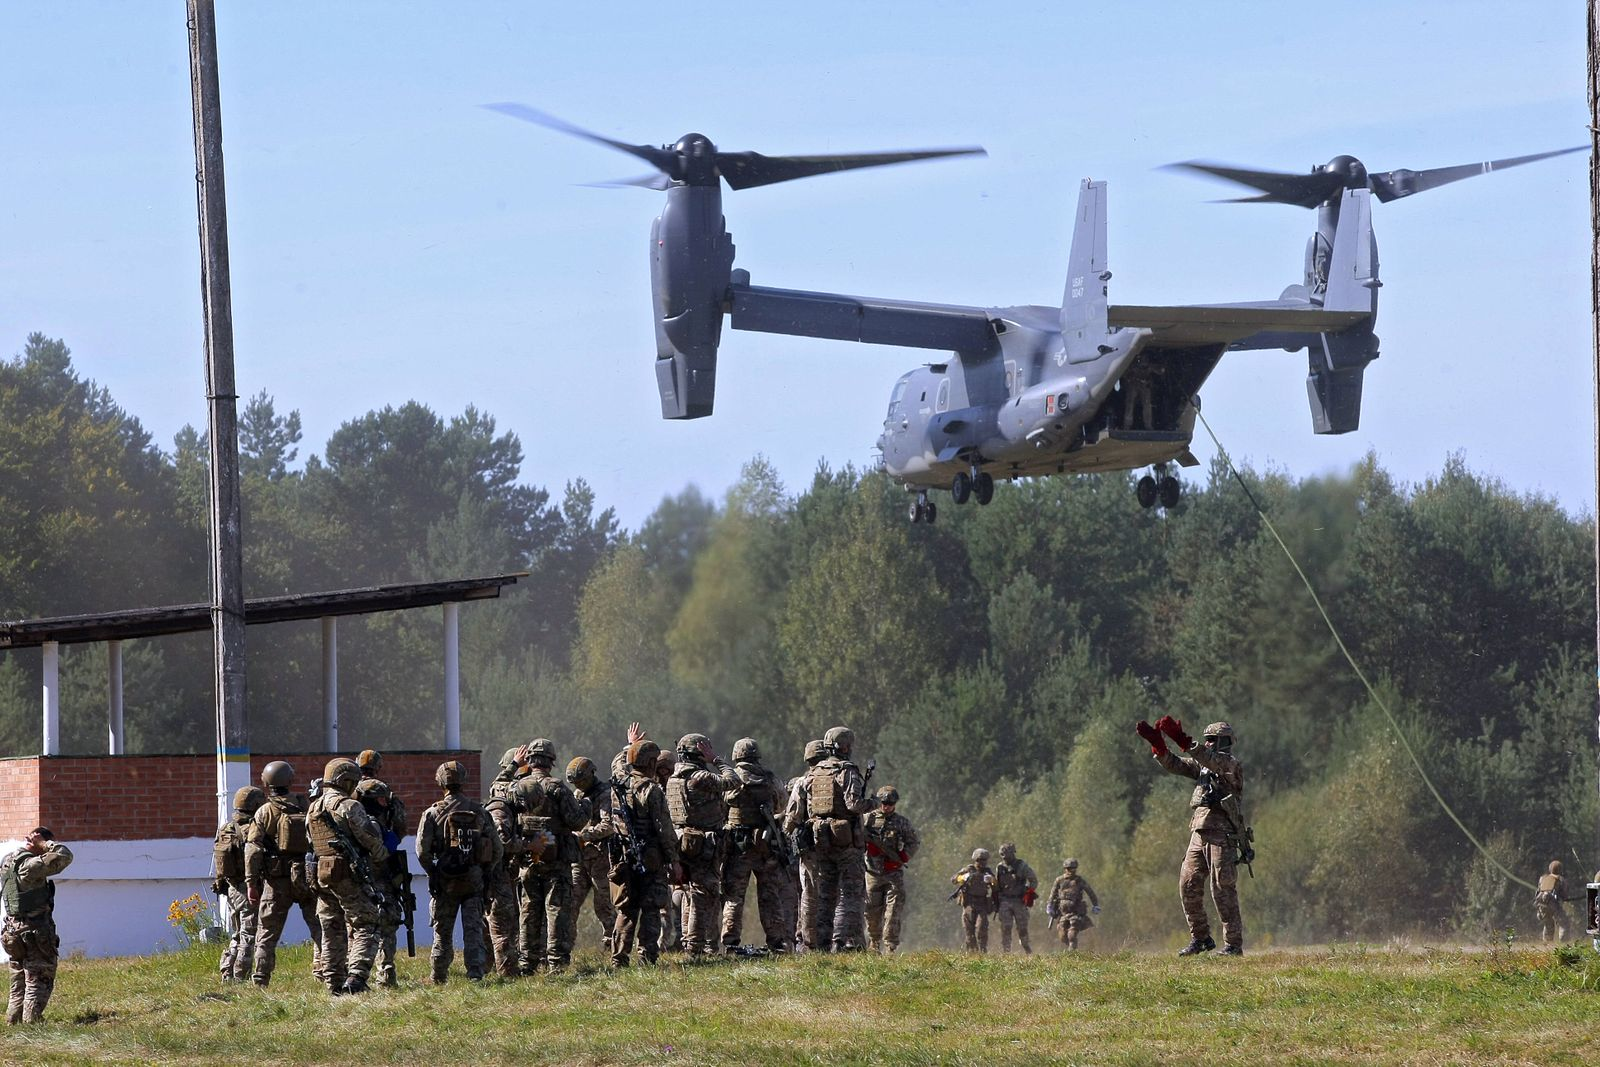 VINNYTSIA REGION, UKRAINE - SEPTEMBER 19, 2020 - Soldiers partake in a fast rappelling exercise from a Bell V-22 Osprey